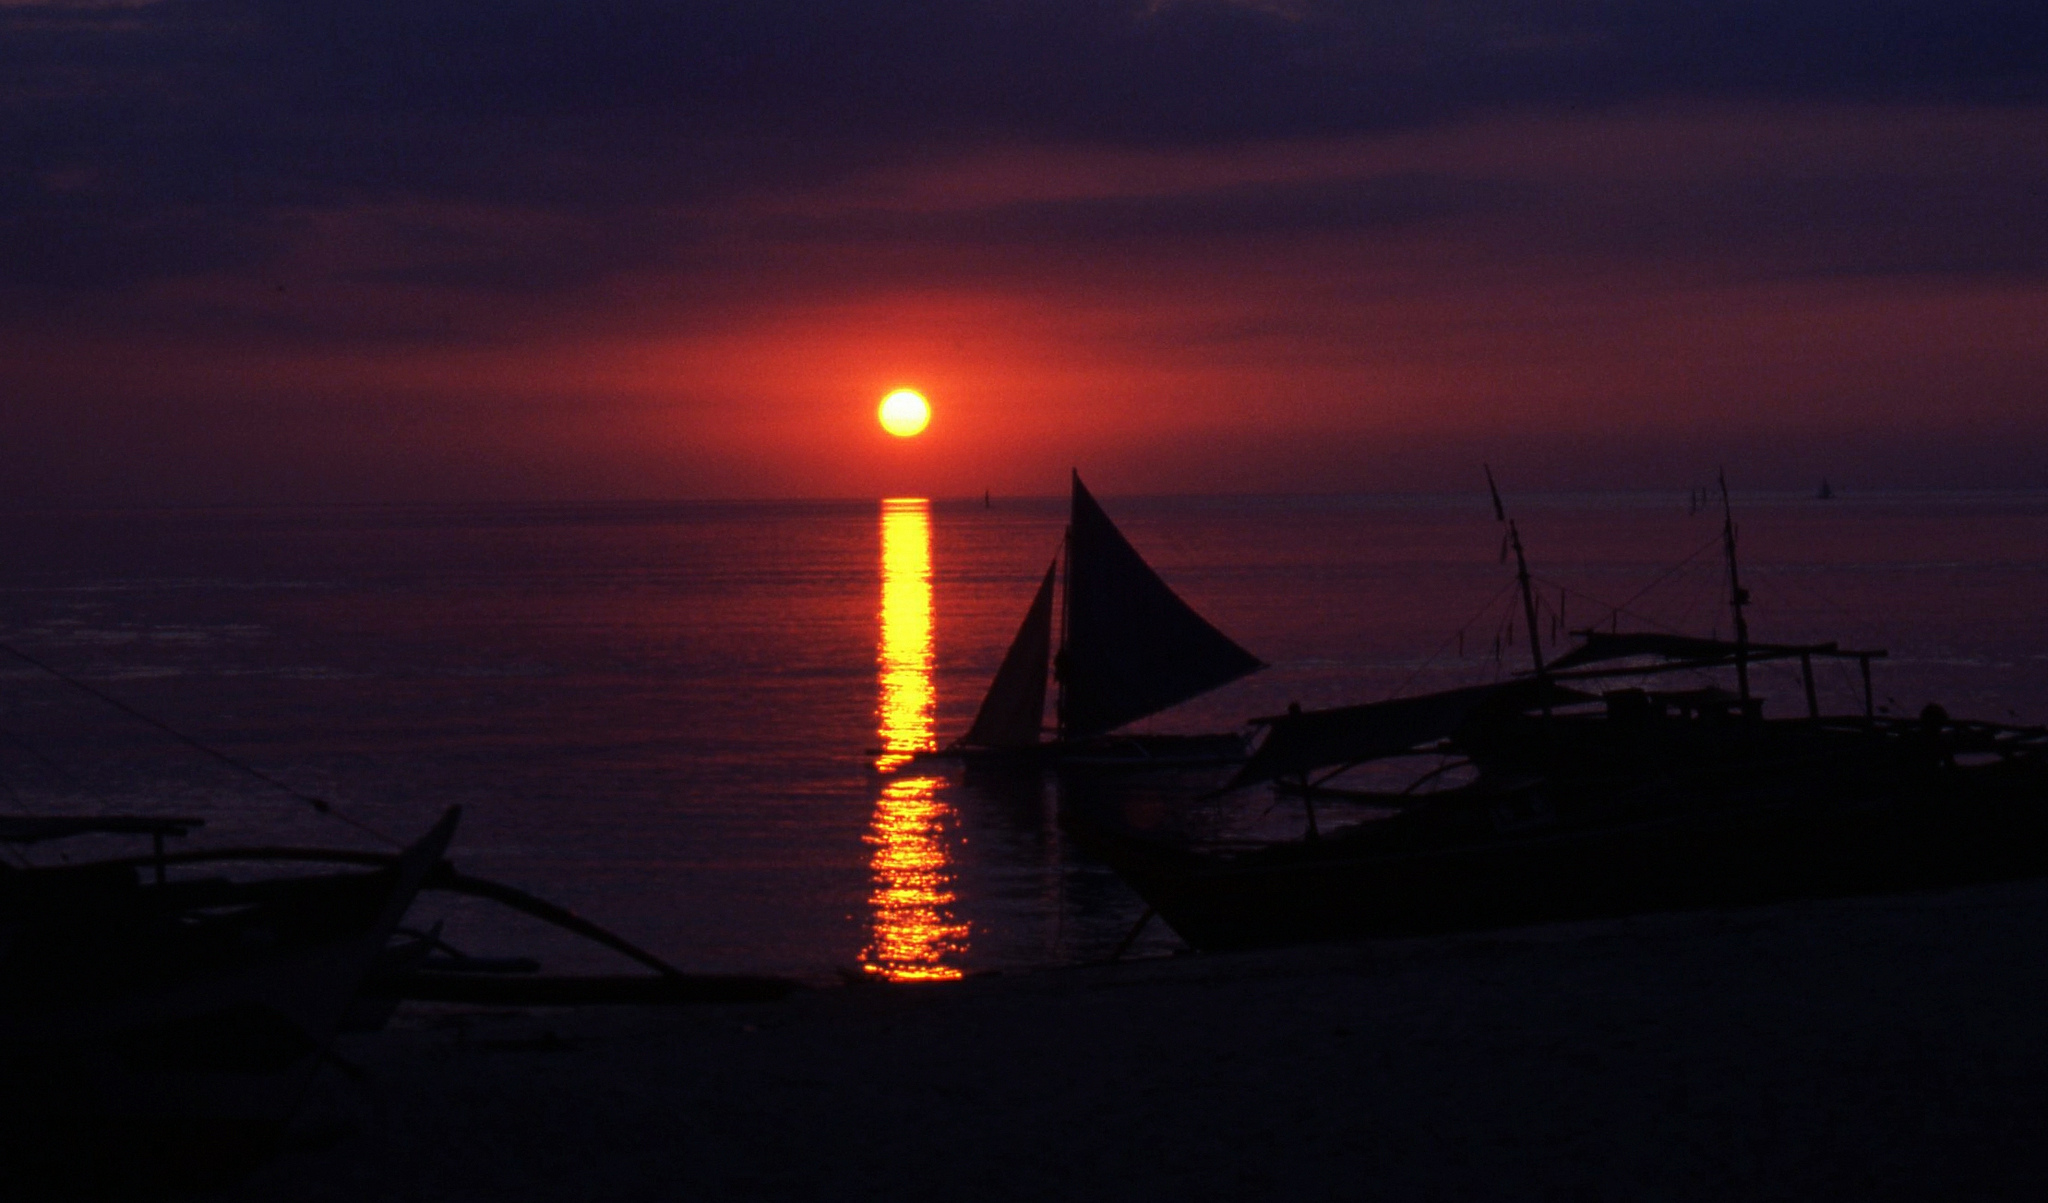 Sunset at Boracay, Philippines